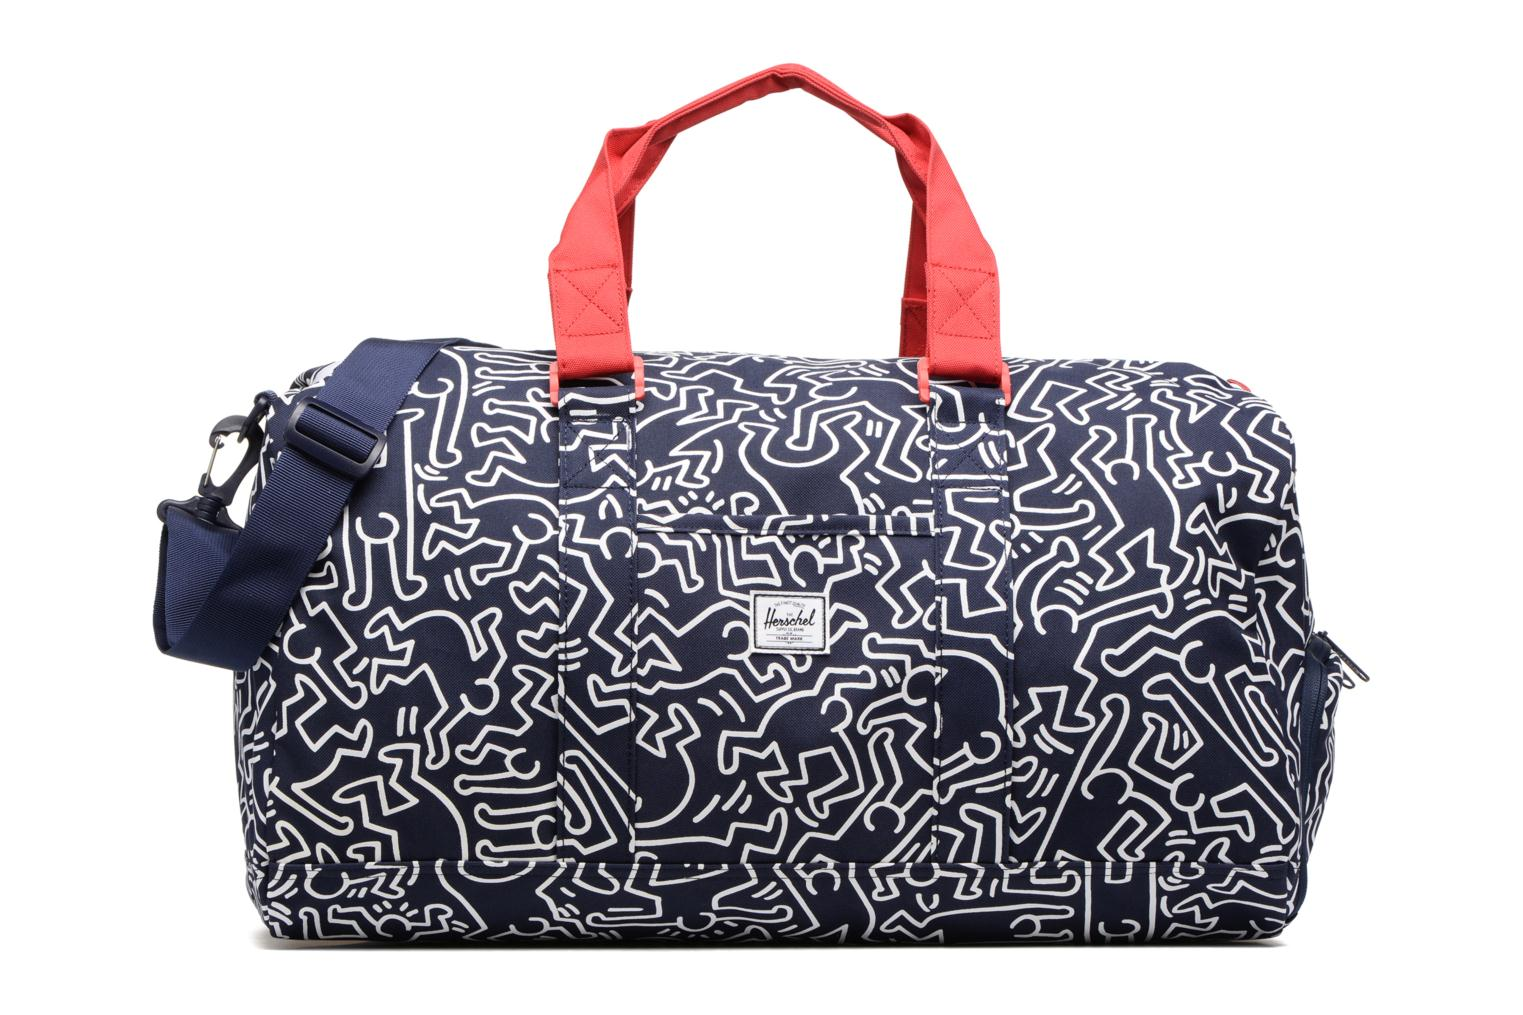 Novel Keith Haring Peacoat Keith Haring